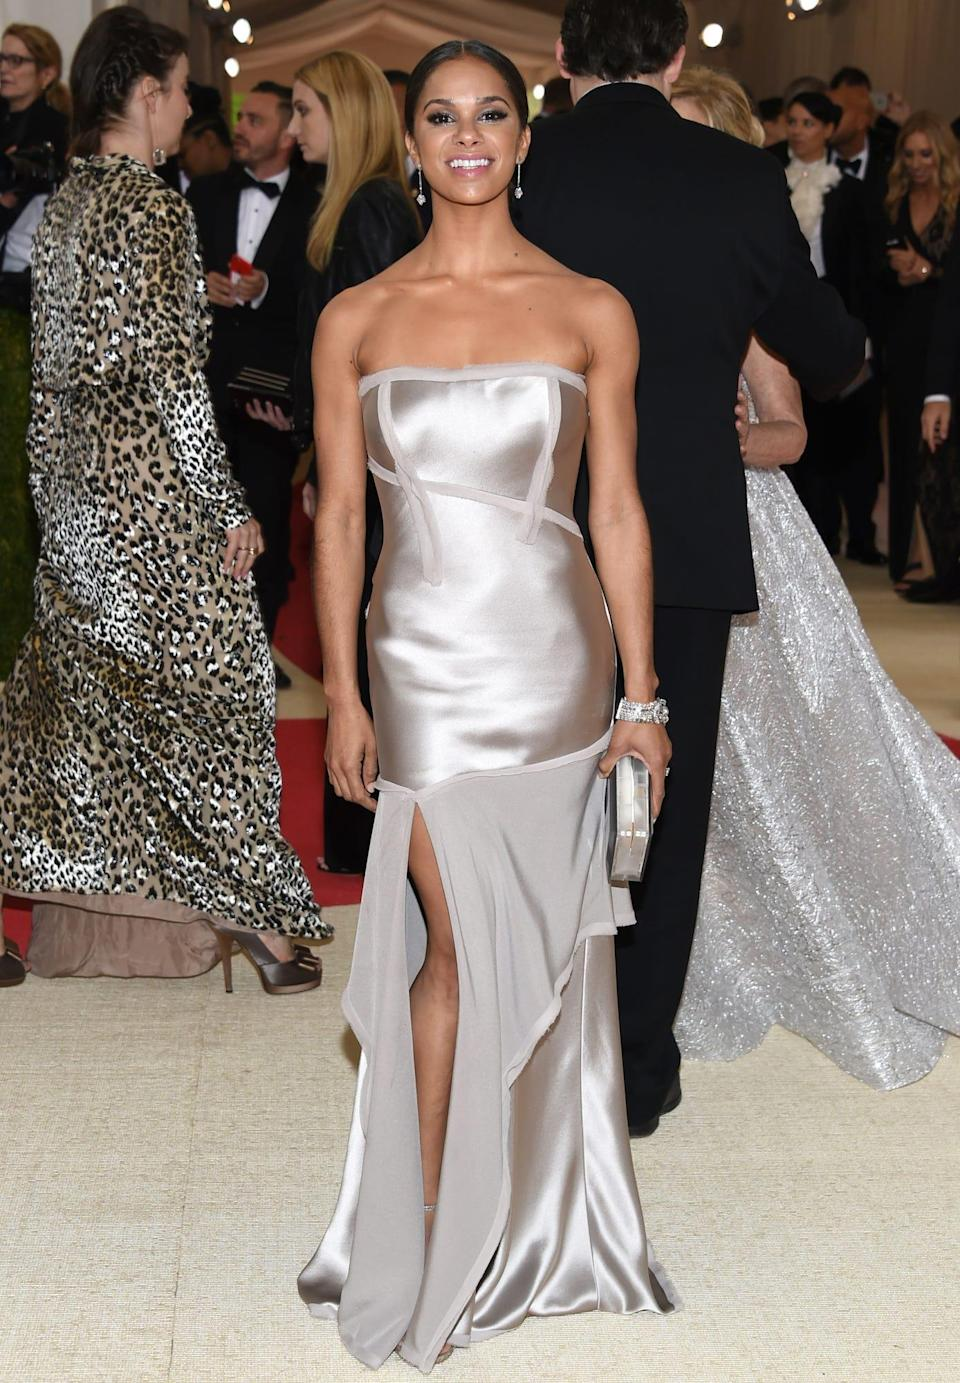 Misty Copeland at the 2016 Met Gala.